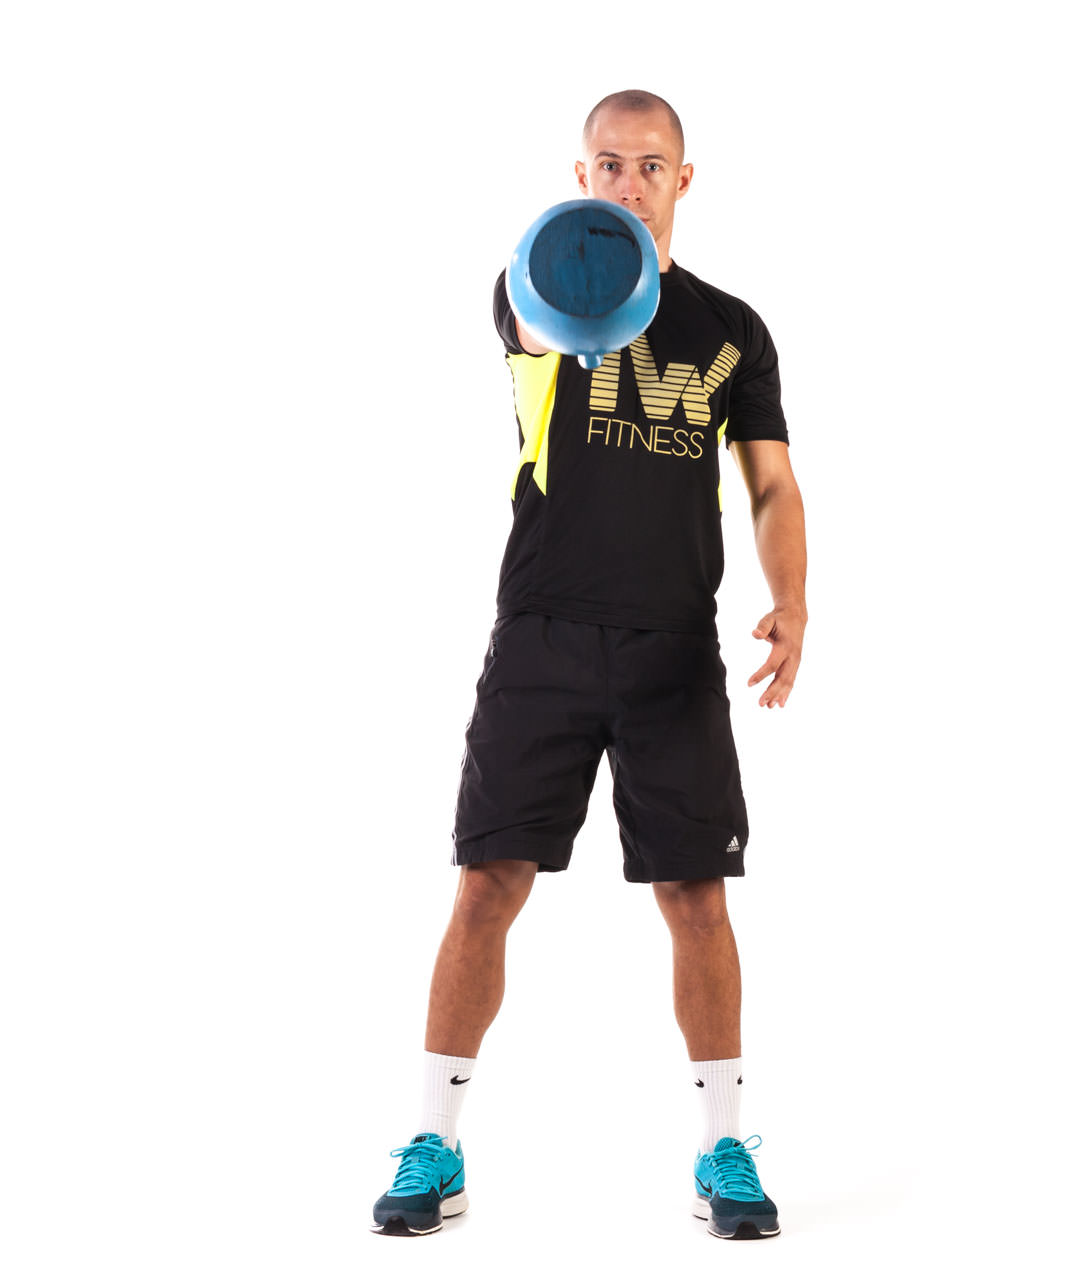 Alternating Kettlebell Swing frame #3